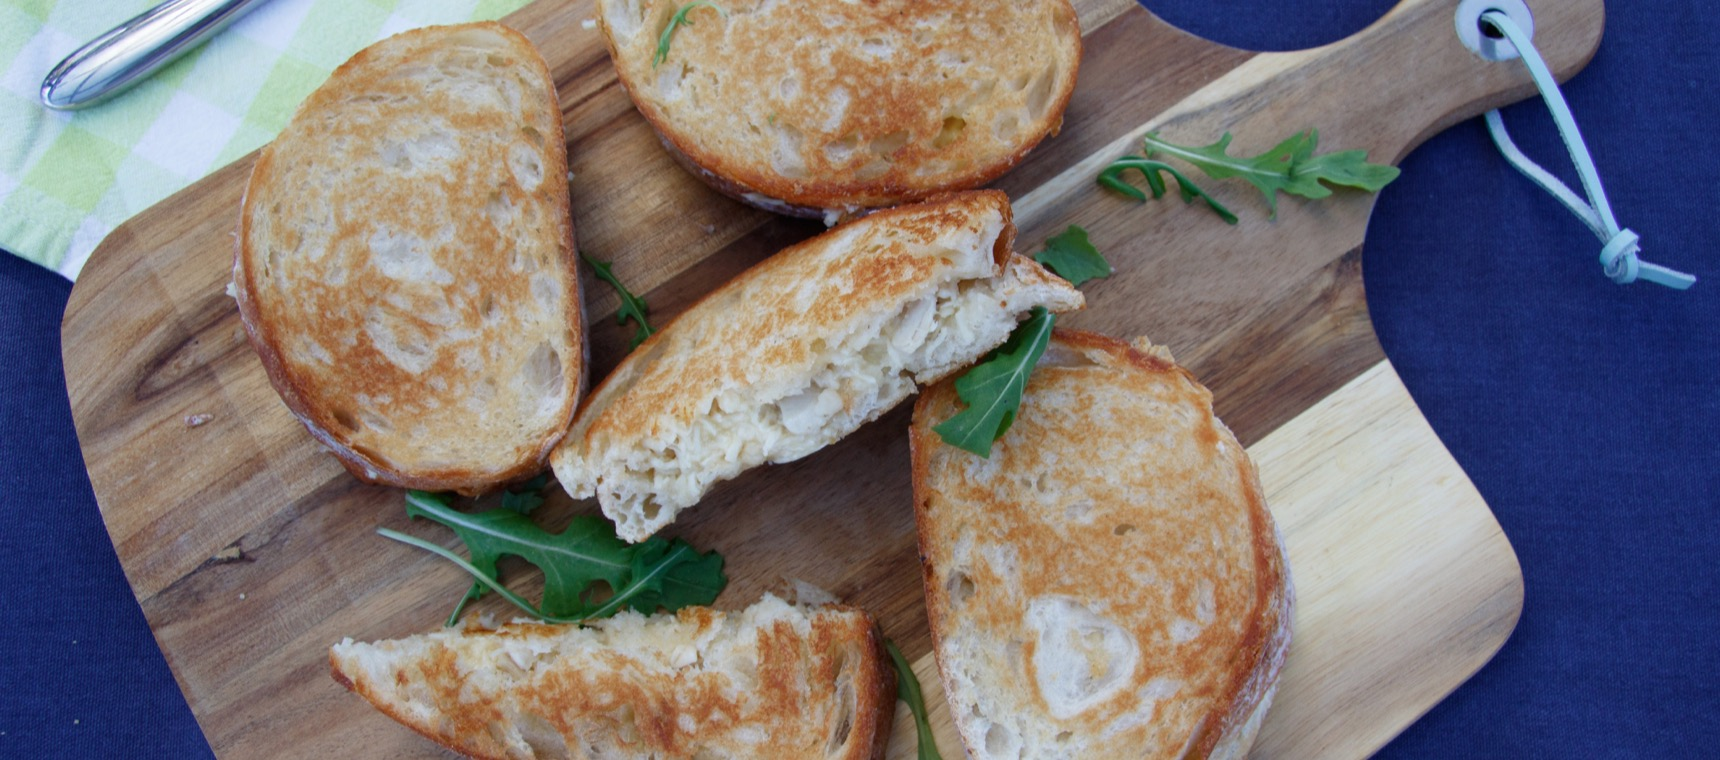 Chicken, Cheese and Mayonnaise Toasted  Sandwiches